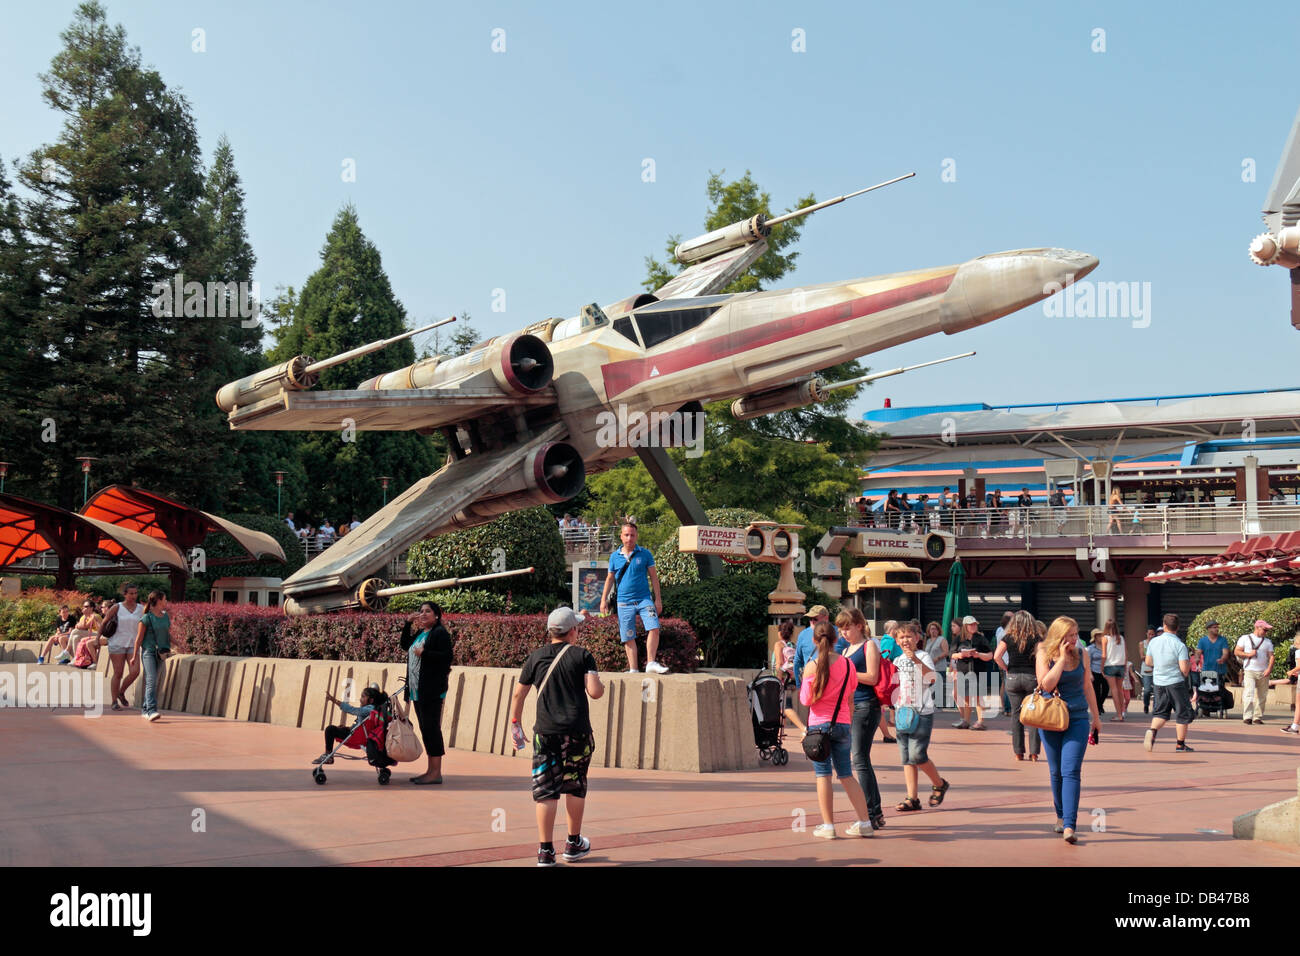 Star Wars X Wing Fighter In Discoveryland Disneyland